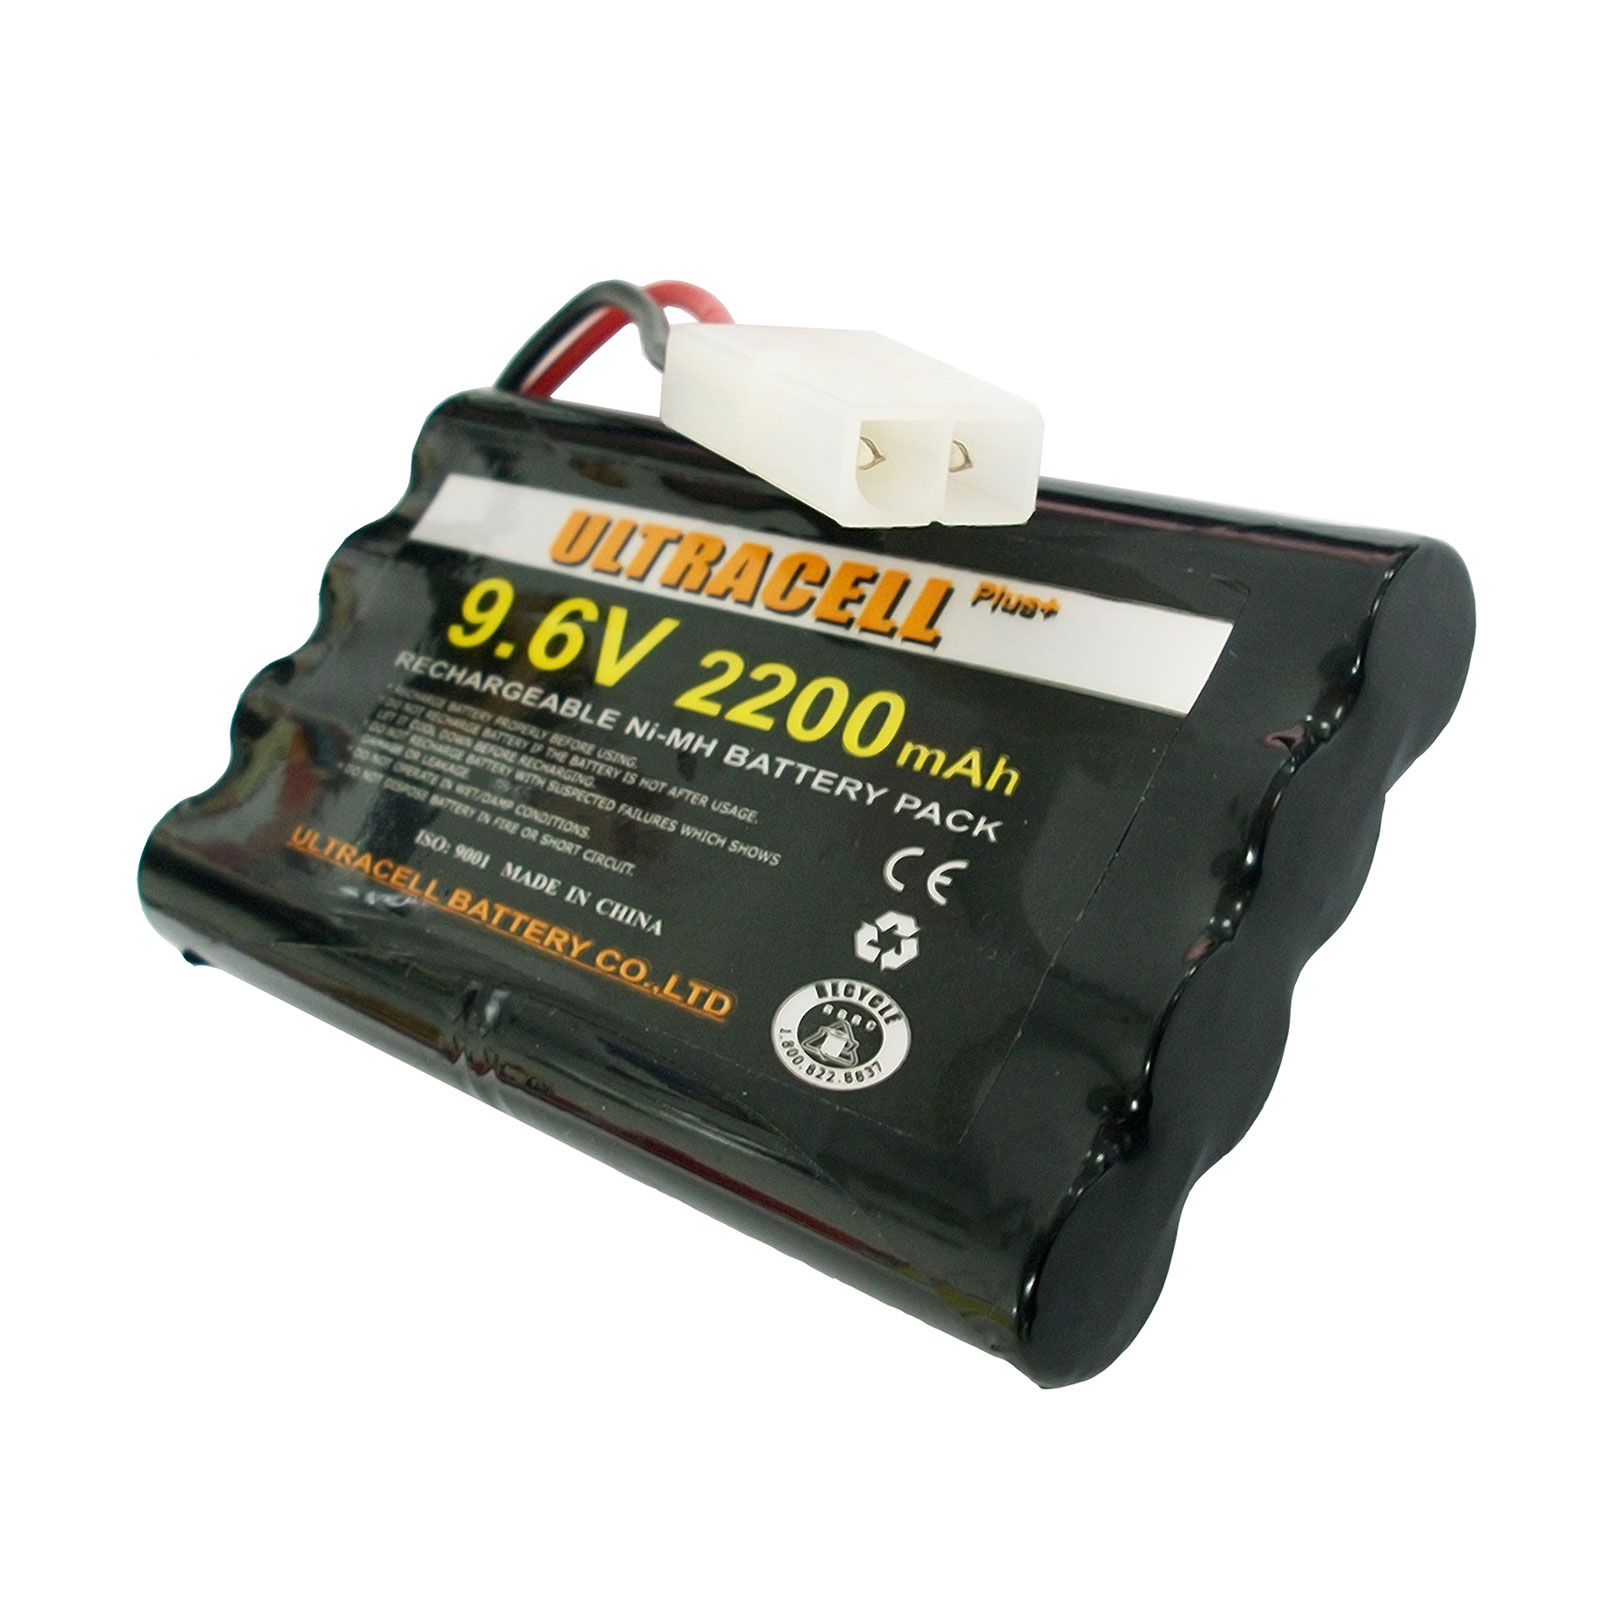 9 6v 8 Aa 2x4 2200mah Nimh Rechargeable Battery Pack